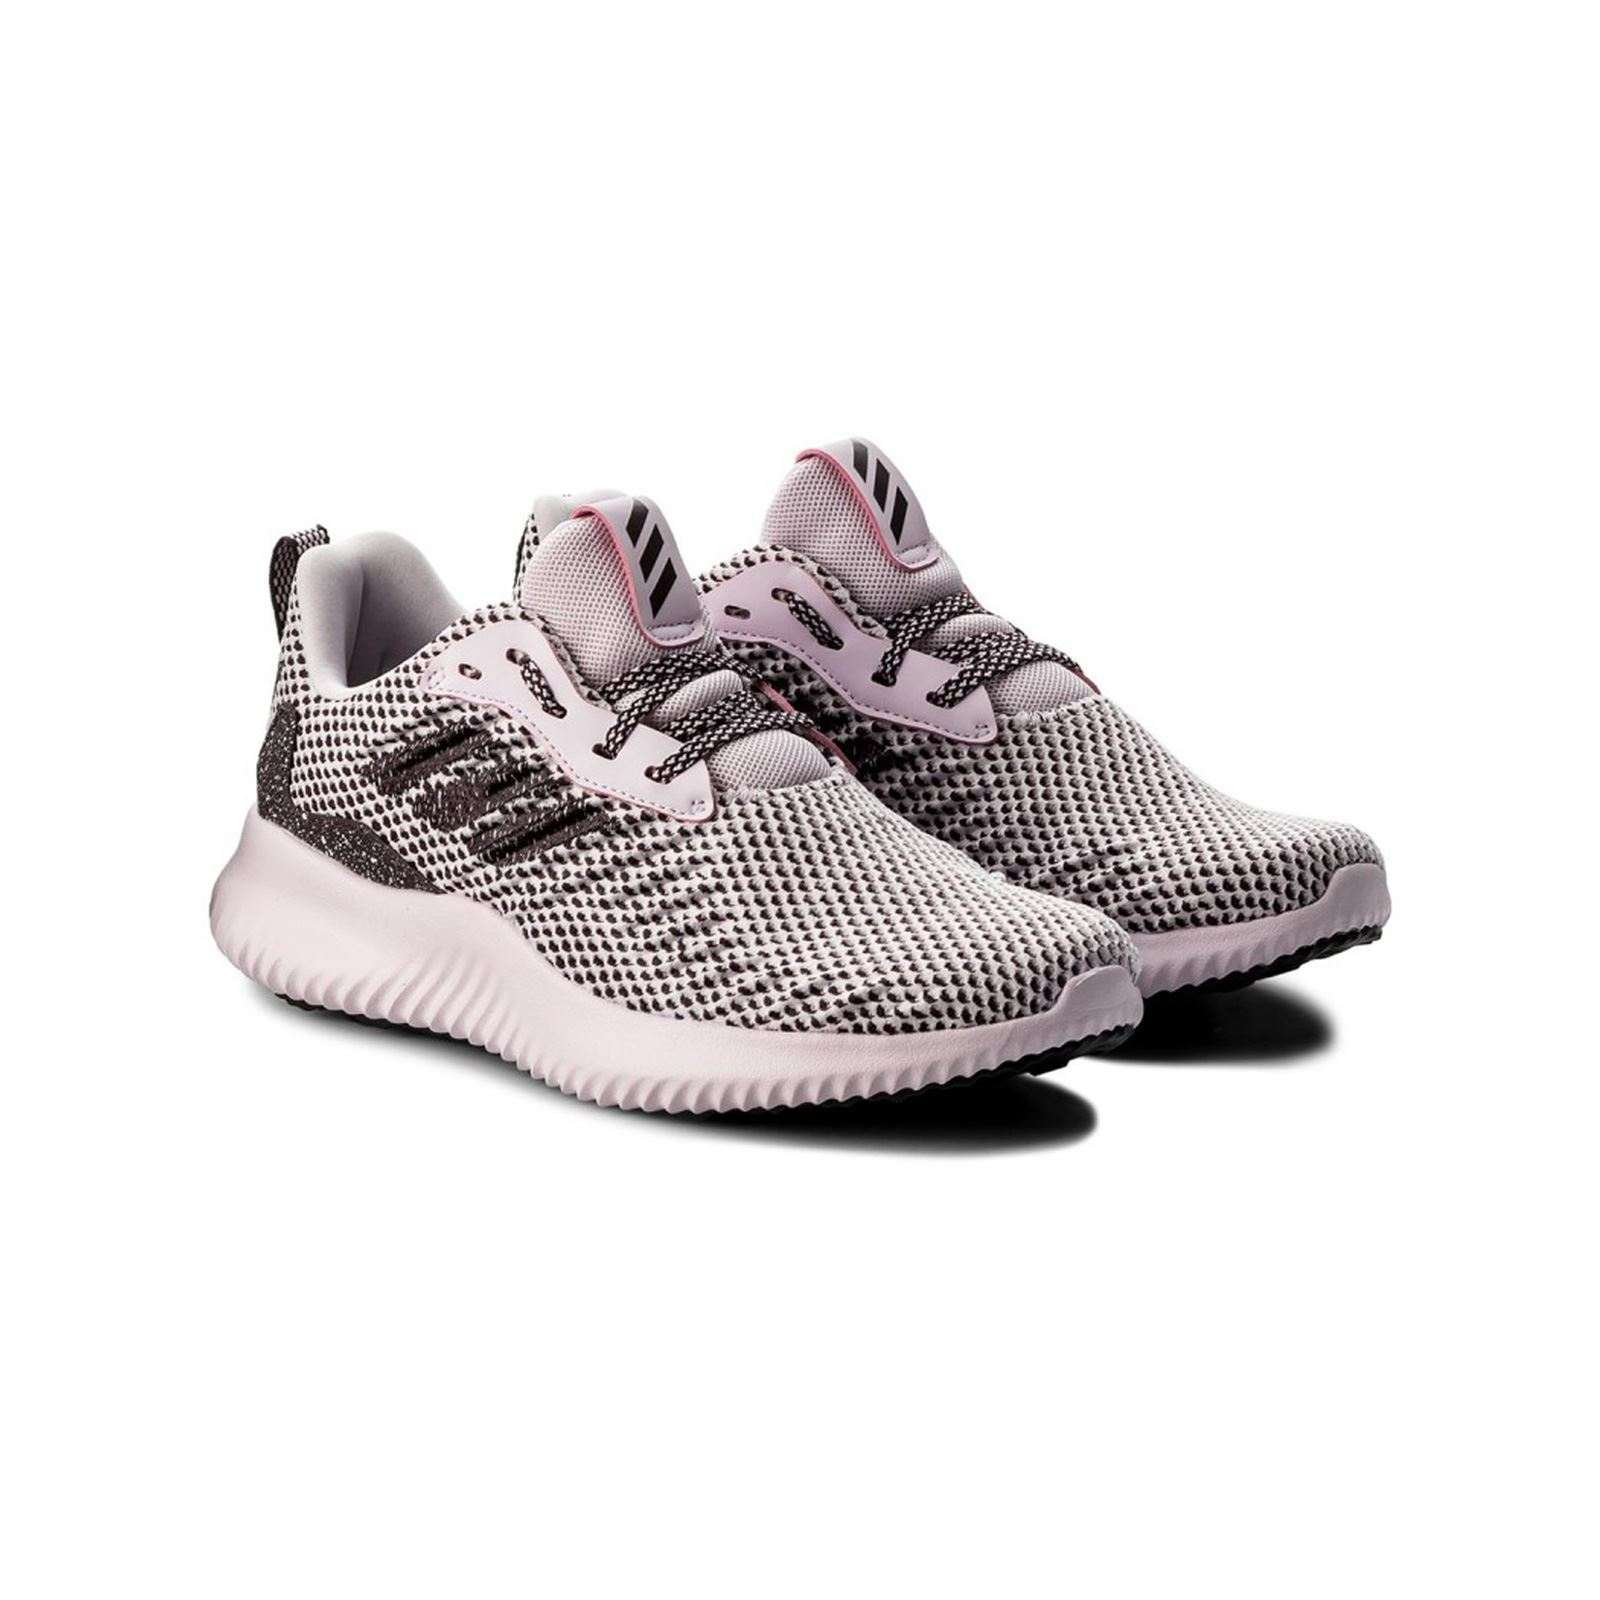 huge discount 8ad79 fa83c ADIDAS PERFORMANCE Alphabounce rc - Baskets Running - gris